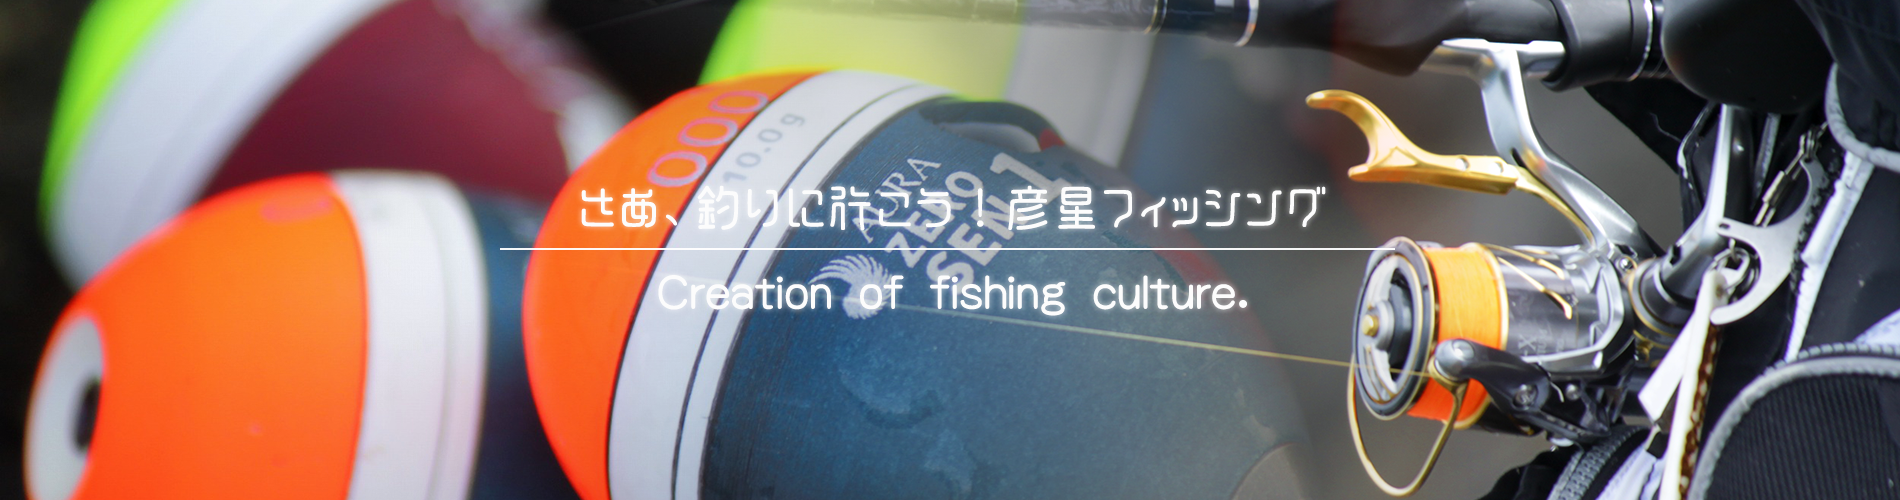 彦星フィッシング-Creation of fishing culture.